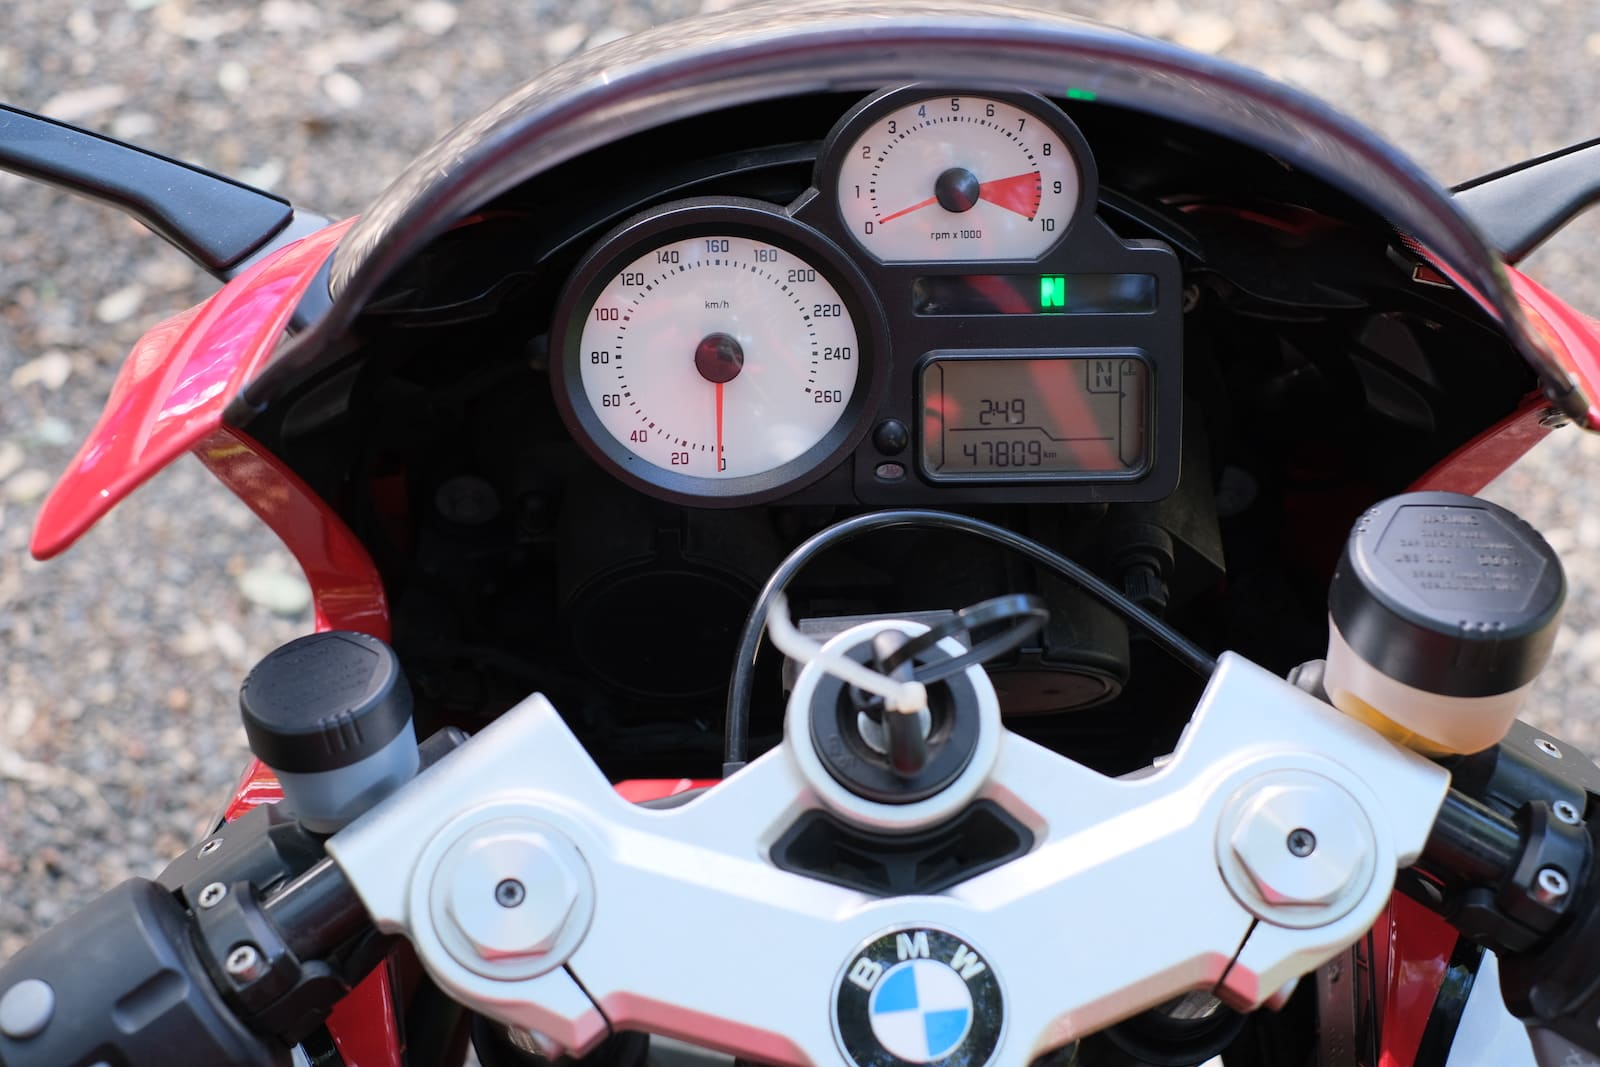 BMW R1200S in red and silver - cockpit and controls